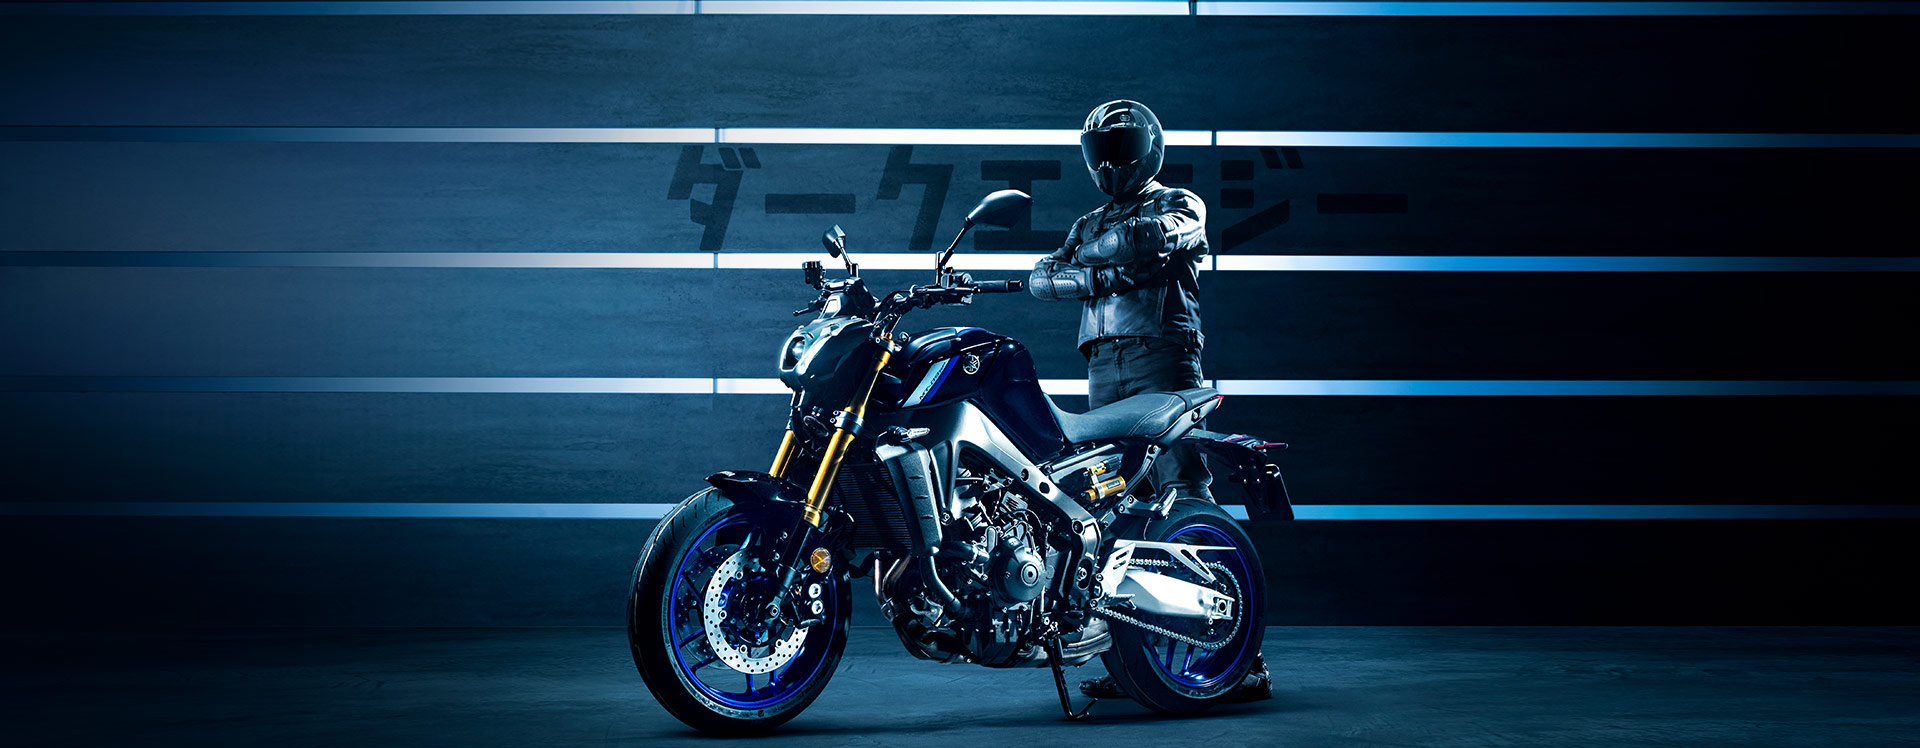 2021 Yamaha Mt-09-Sp